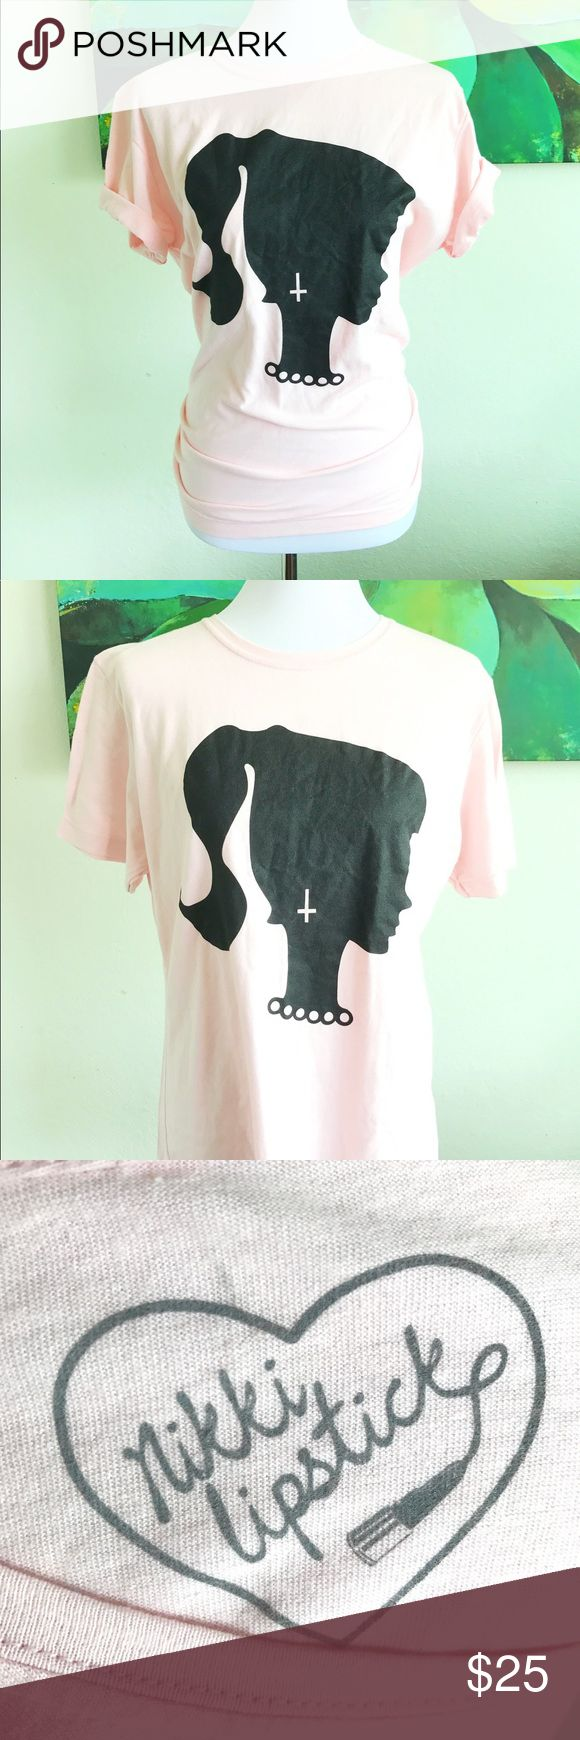 Nikki lipstick graphic t-shirt size large 2015 Dollcult tee. Barbie outline with inverted cross earring. One size fits most! Sold out everywhere! nikki lipstick Tops Tees - Short Sleeve